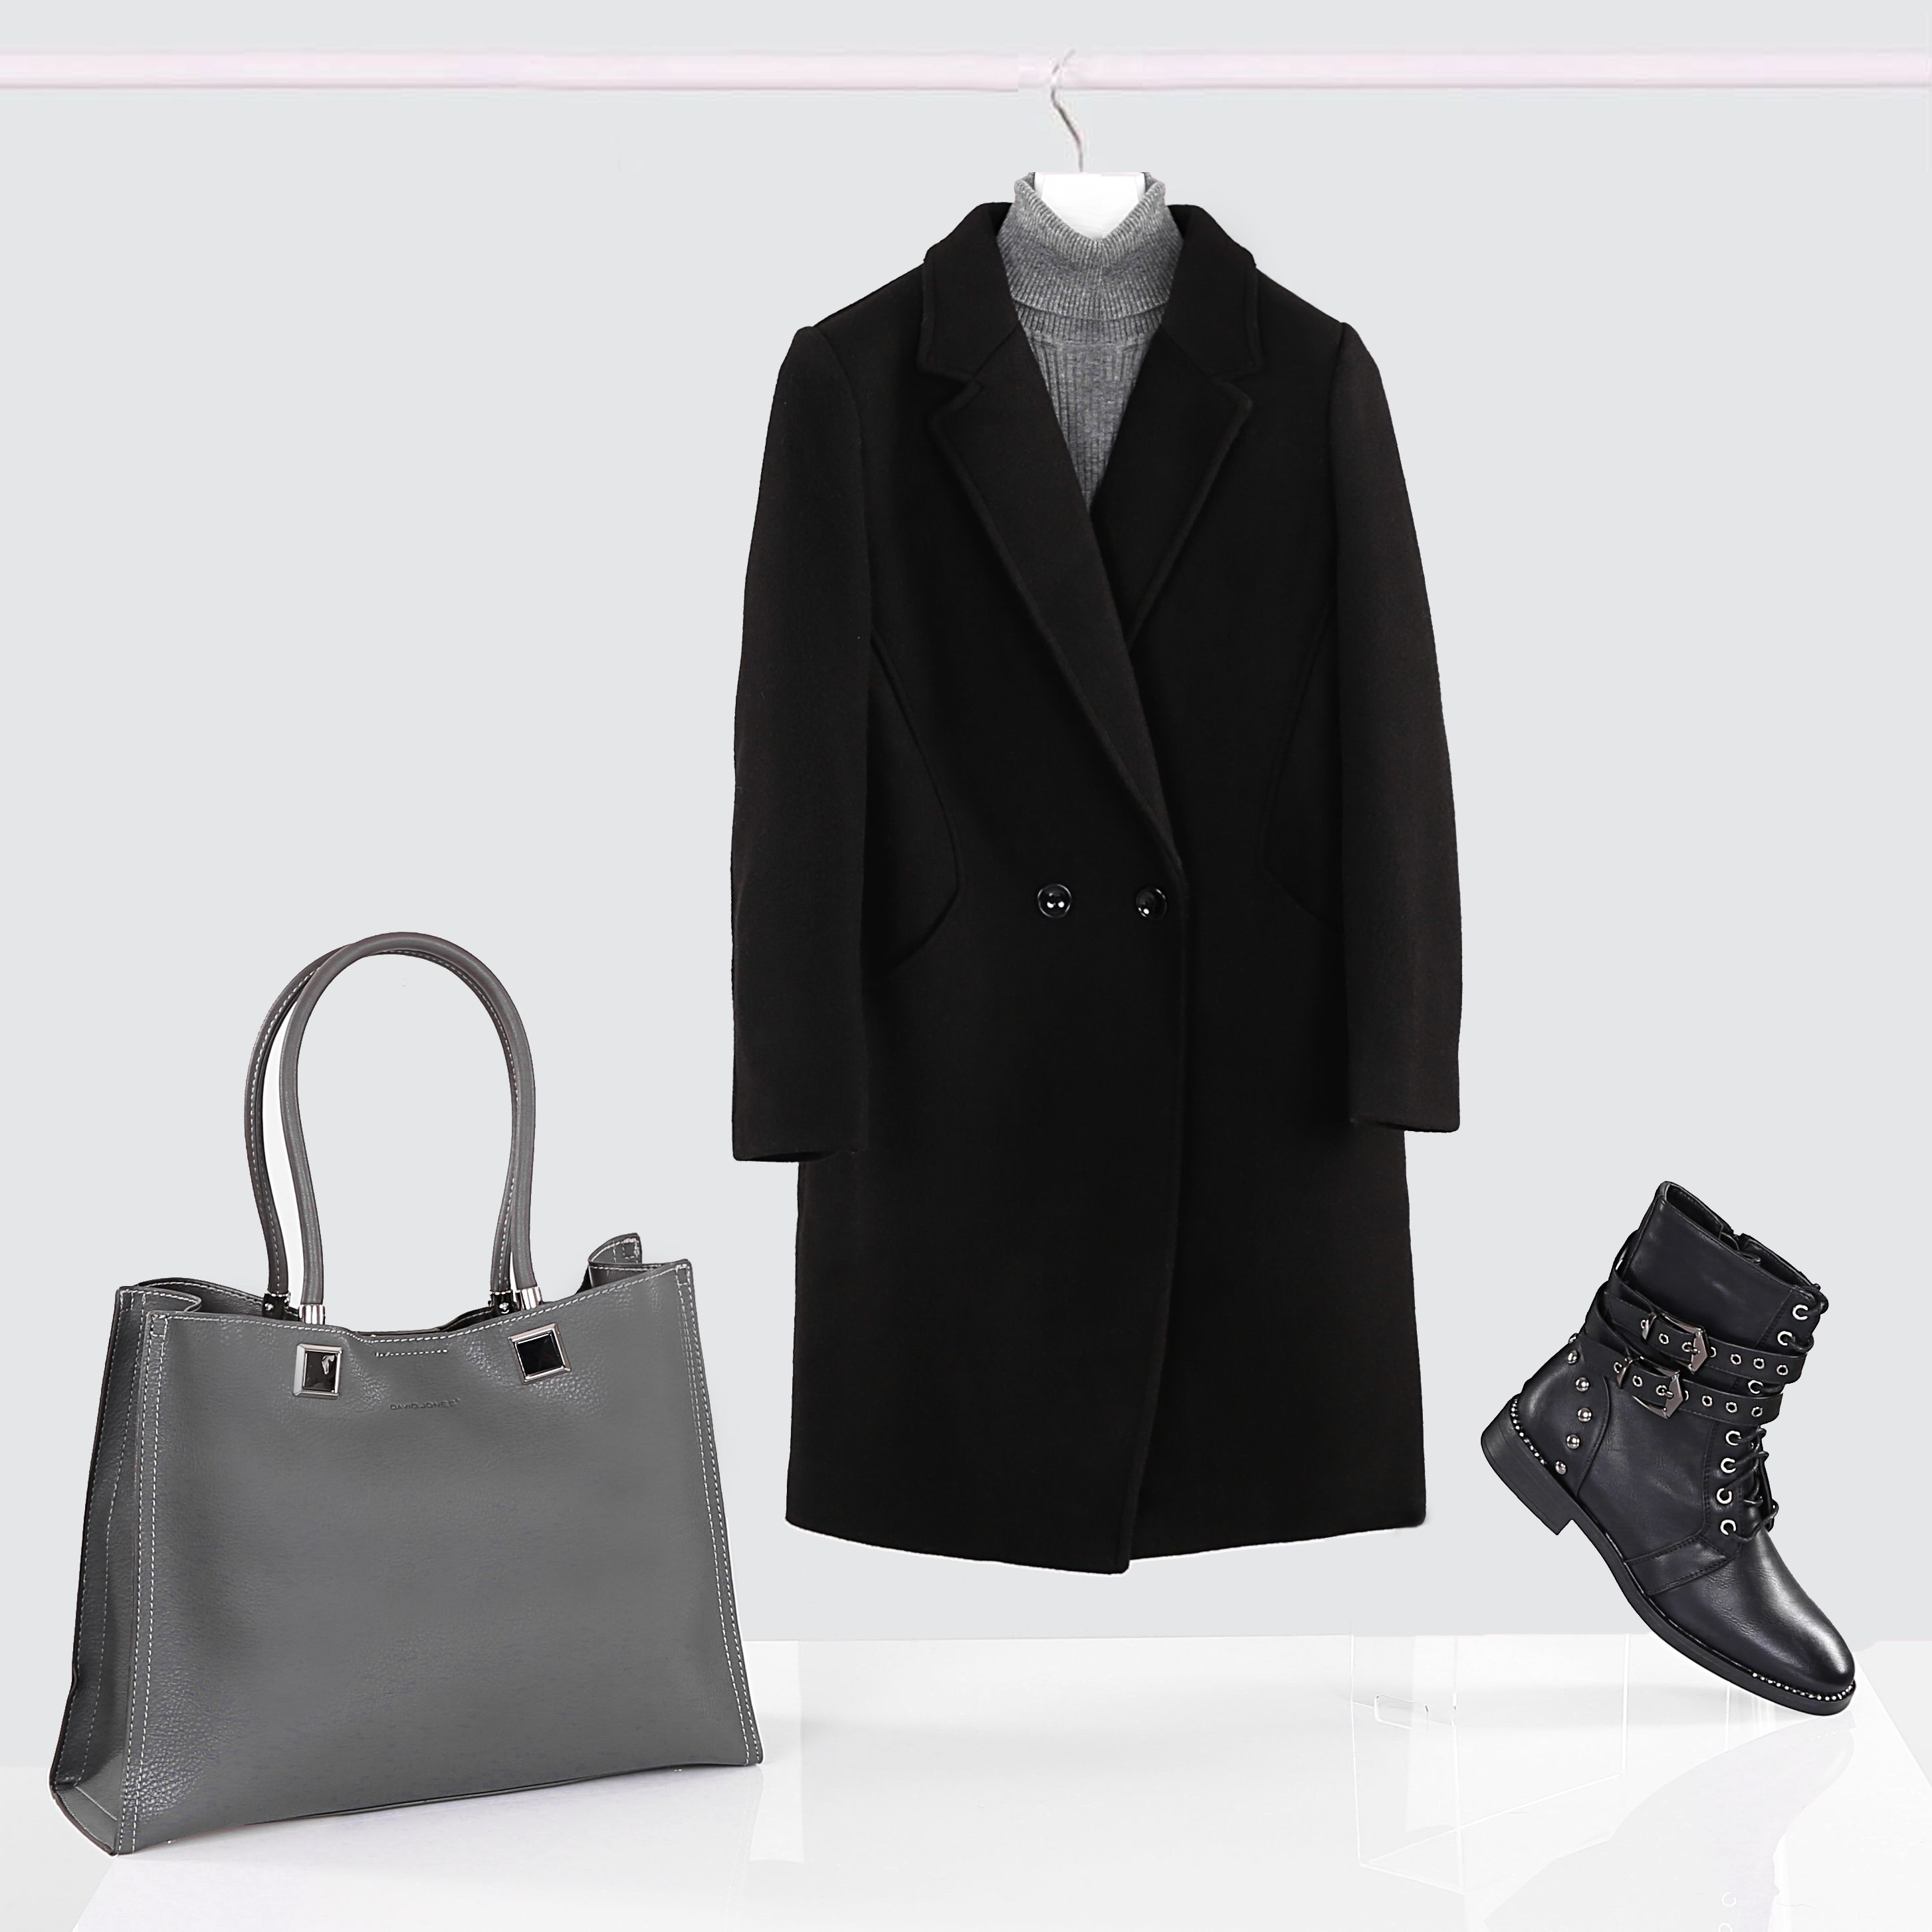 Elegant stylization with grunge shoes :) #elegant #stylization #elegantstylization #grunge #grunestyle #shoes #grungeshoes #black #allblack #blackstylization #greybag #classic #classiclook